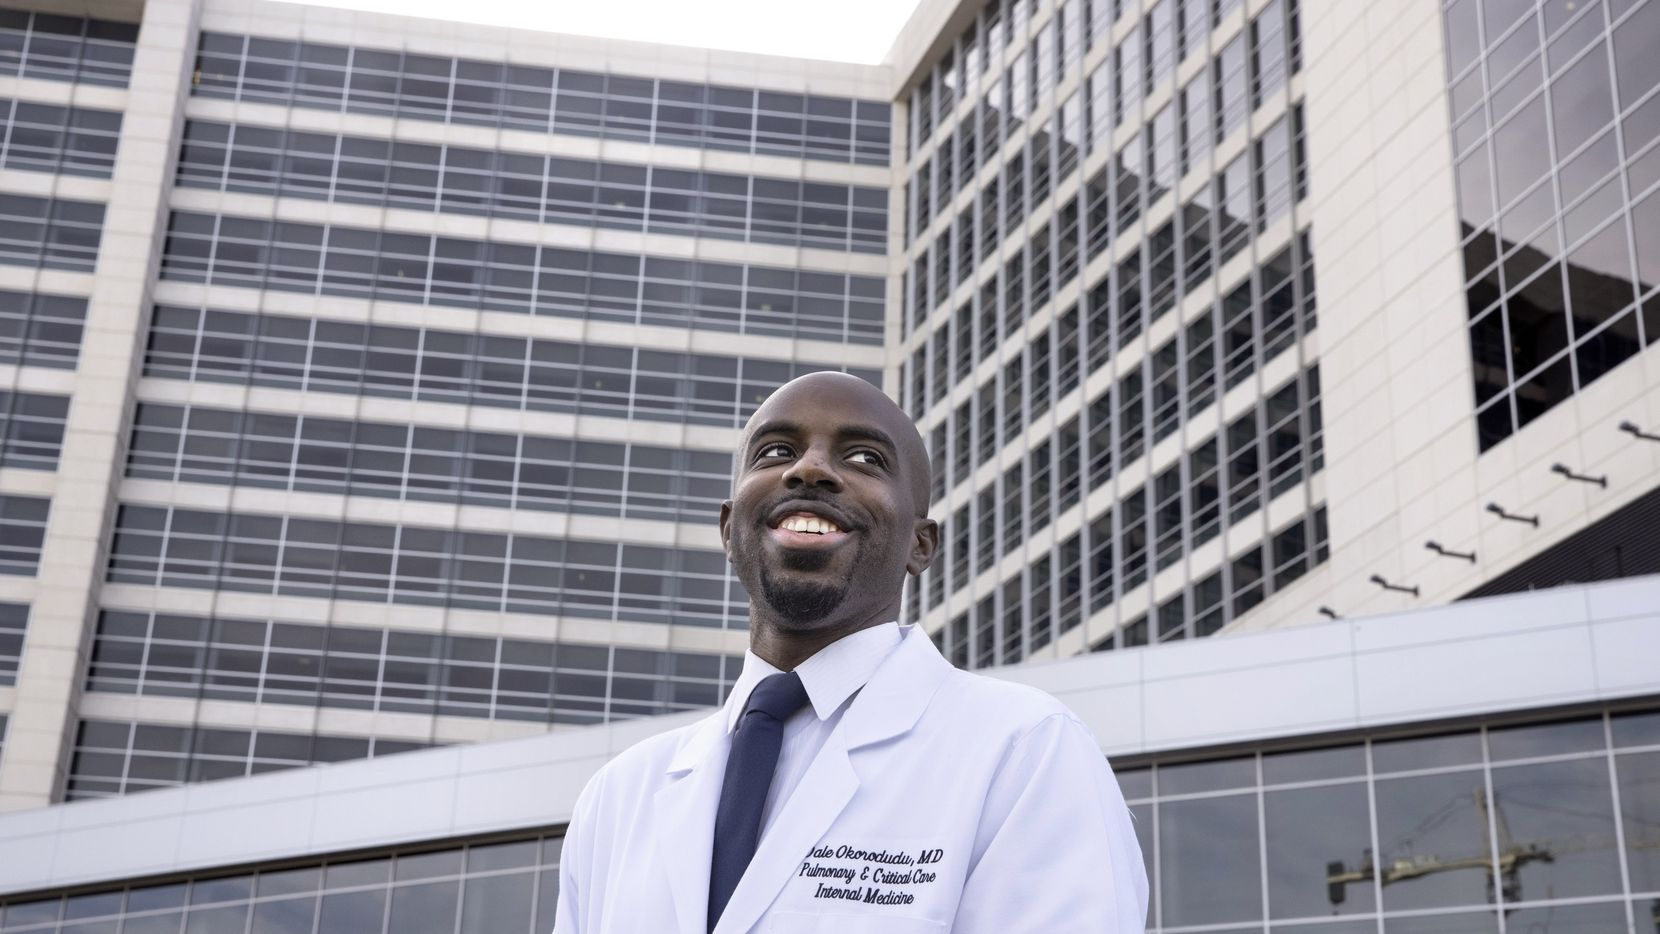 Dr. Dale Okorodudu poses for a portrait outside of the University of Texas Southwestern Medical Center's William P. Clements Jr. University Hospital on Tuesday, Feb. 2, 2021, in Dallas.